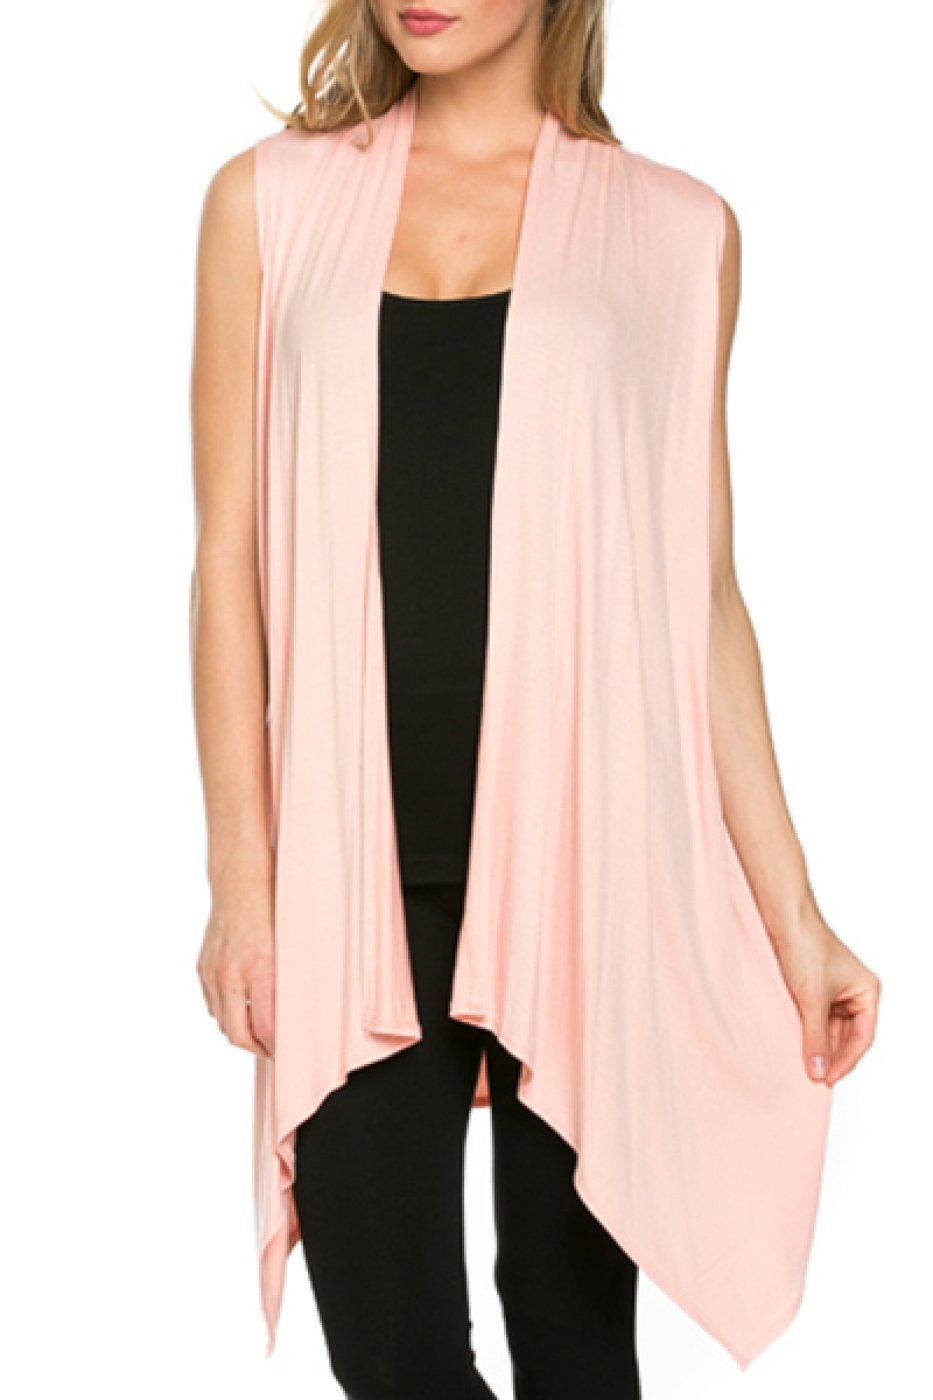 2LUV Women's Draped Open Front Jersey Knit Vest